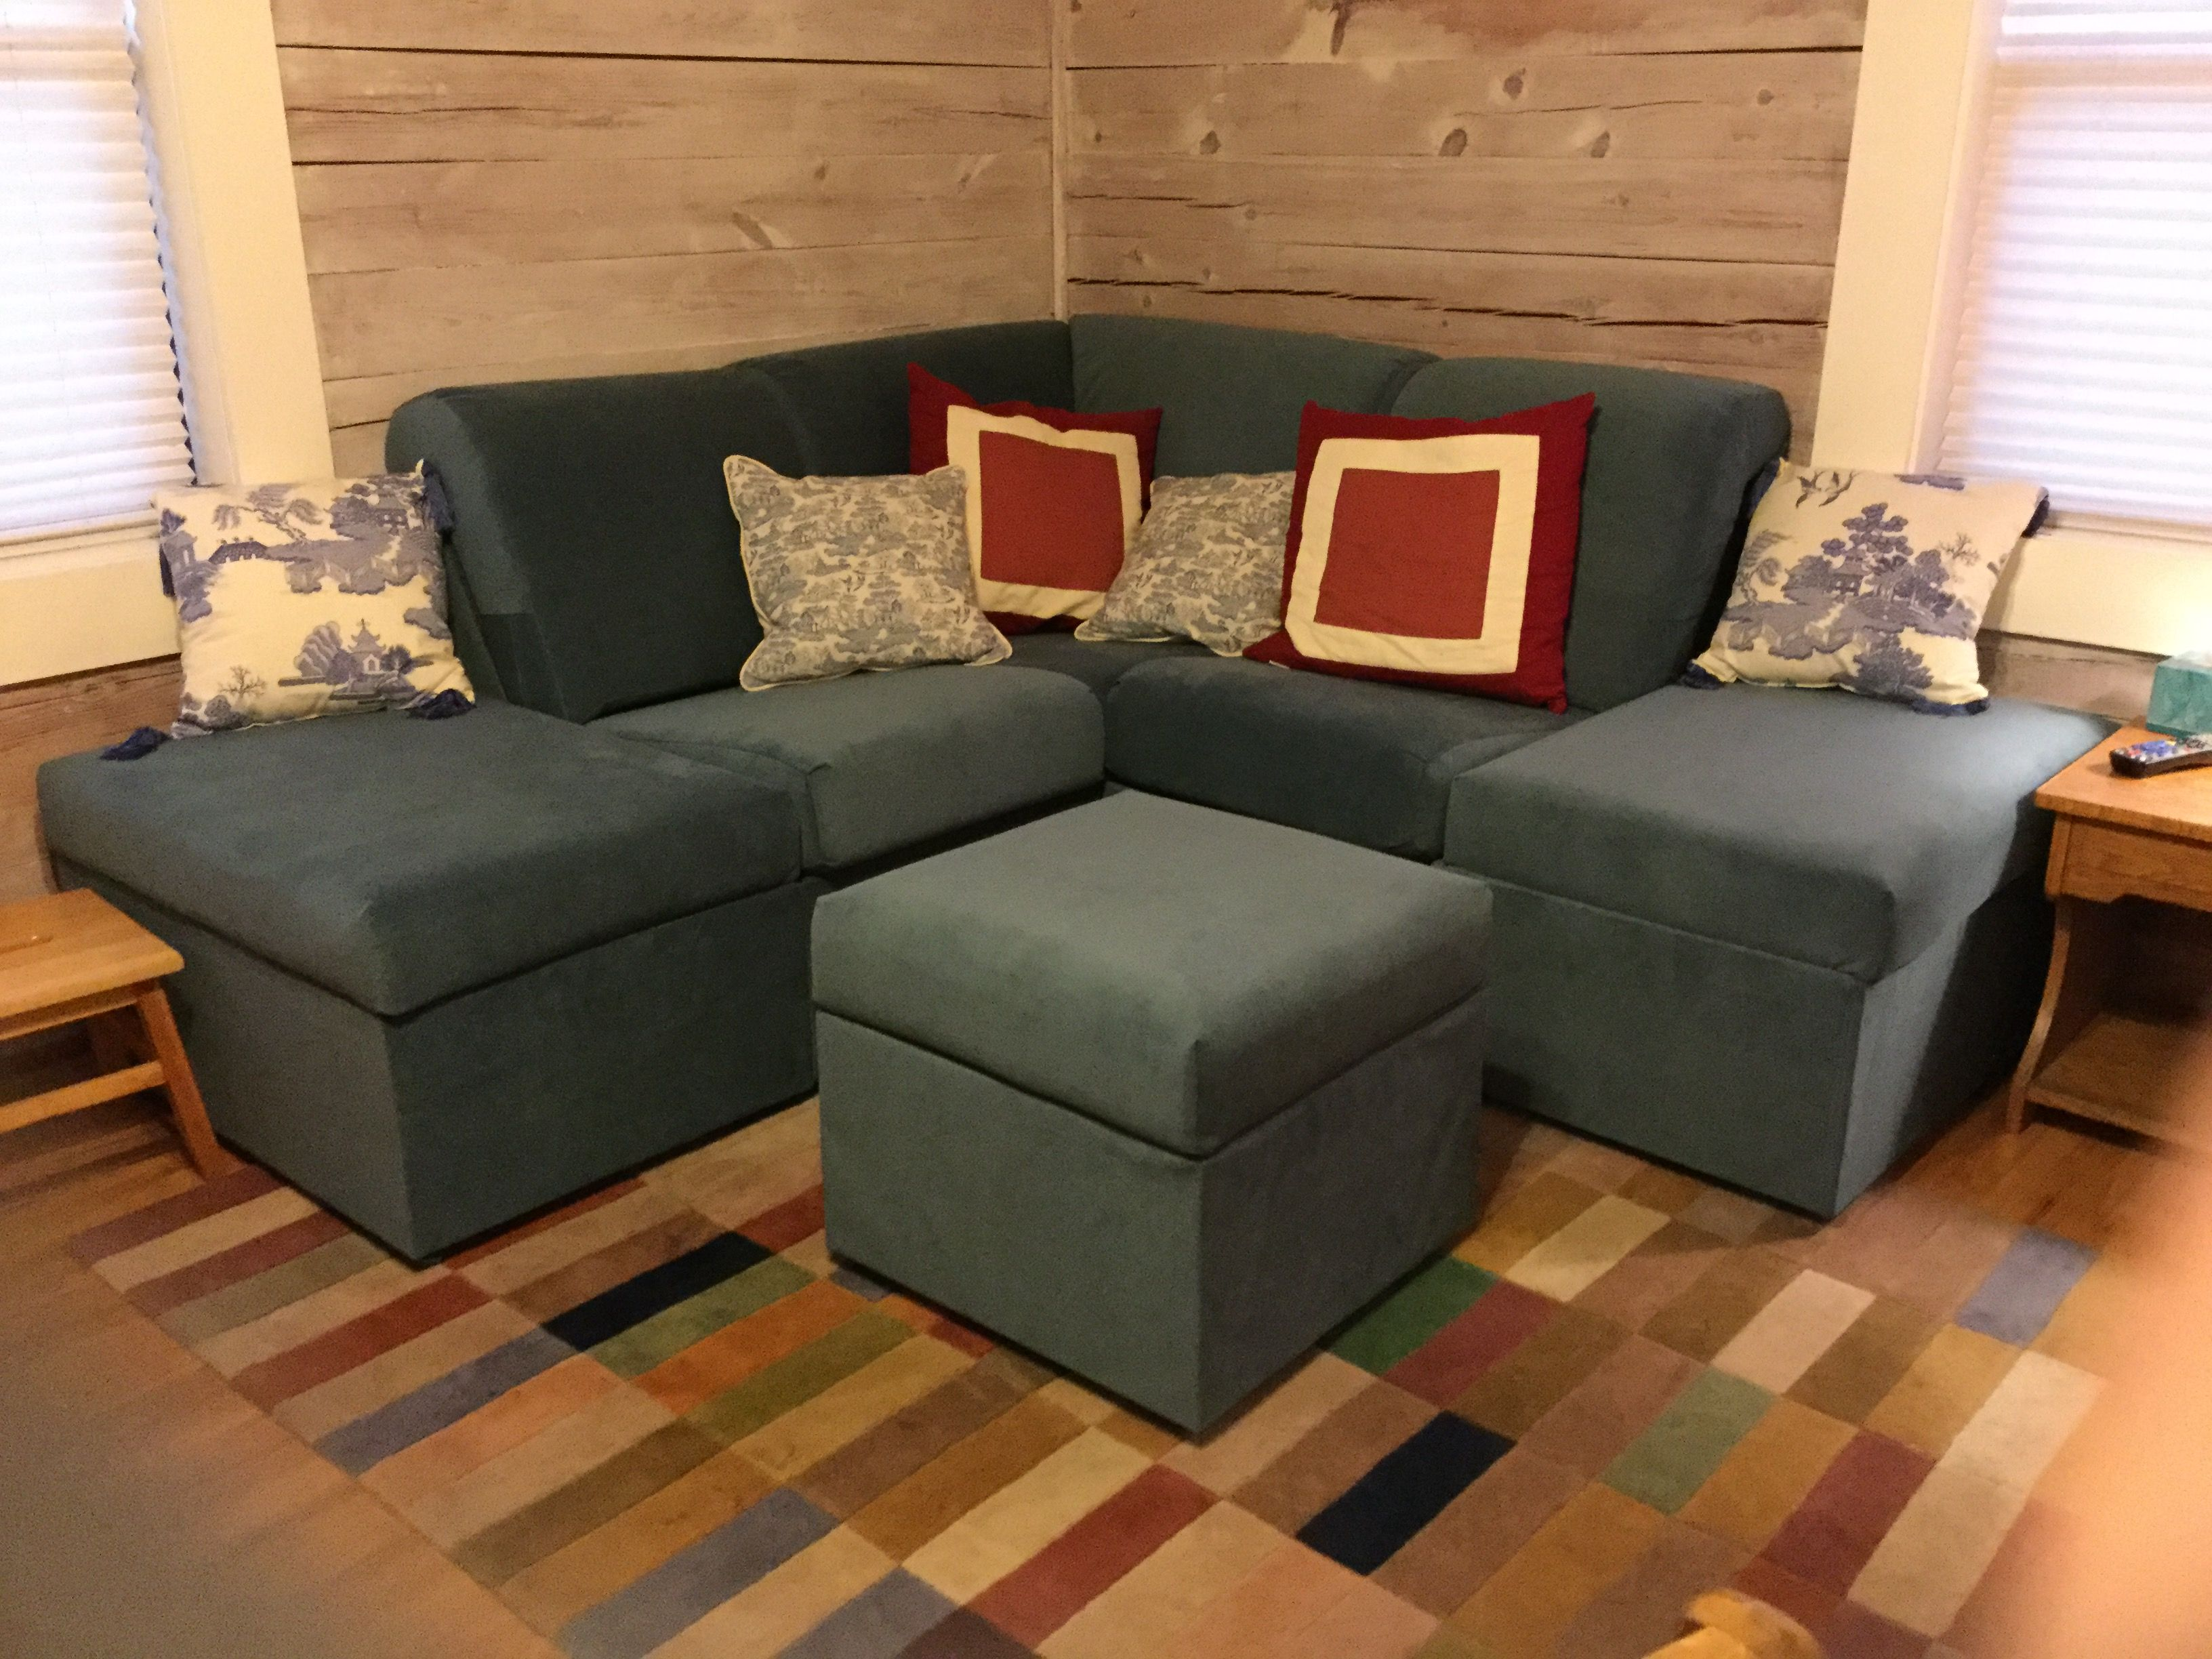 My New Home Reserve Sectional Sofa For A Small Space Love It